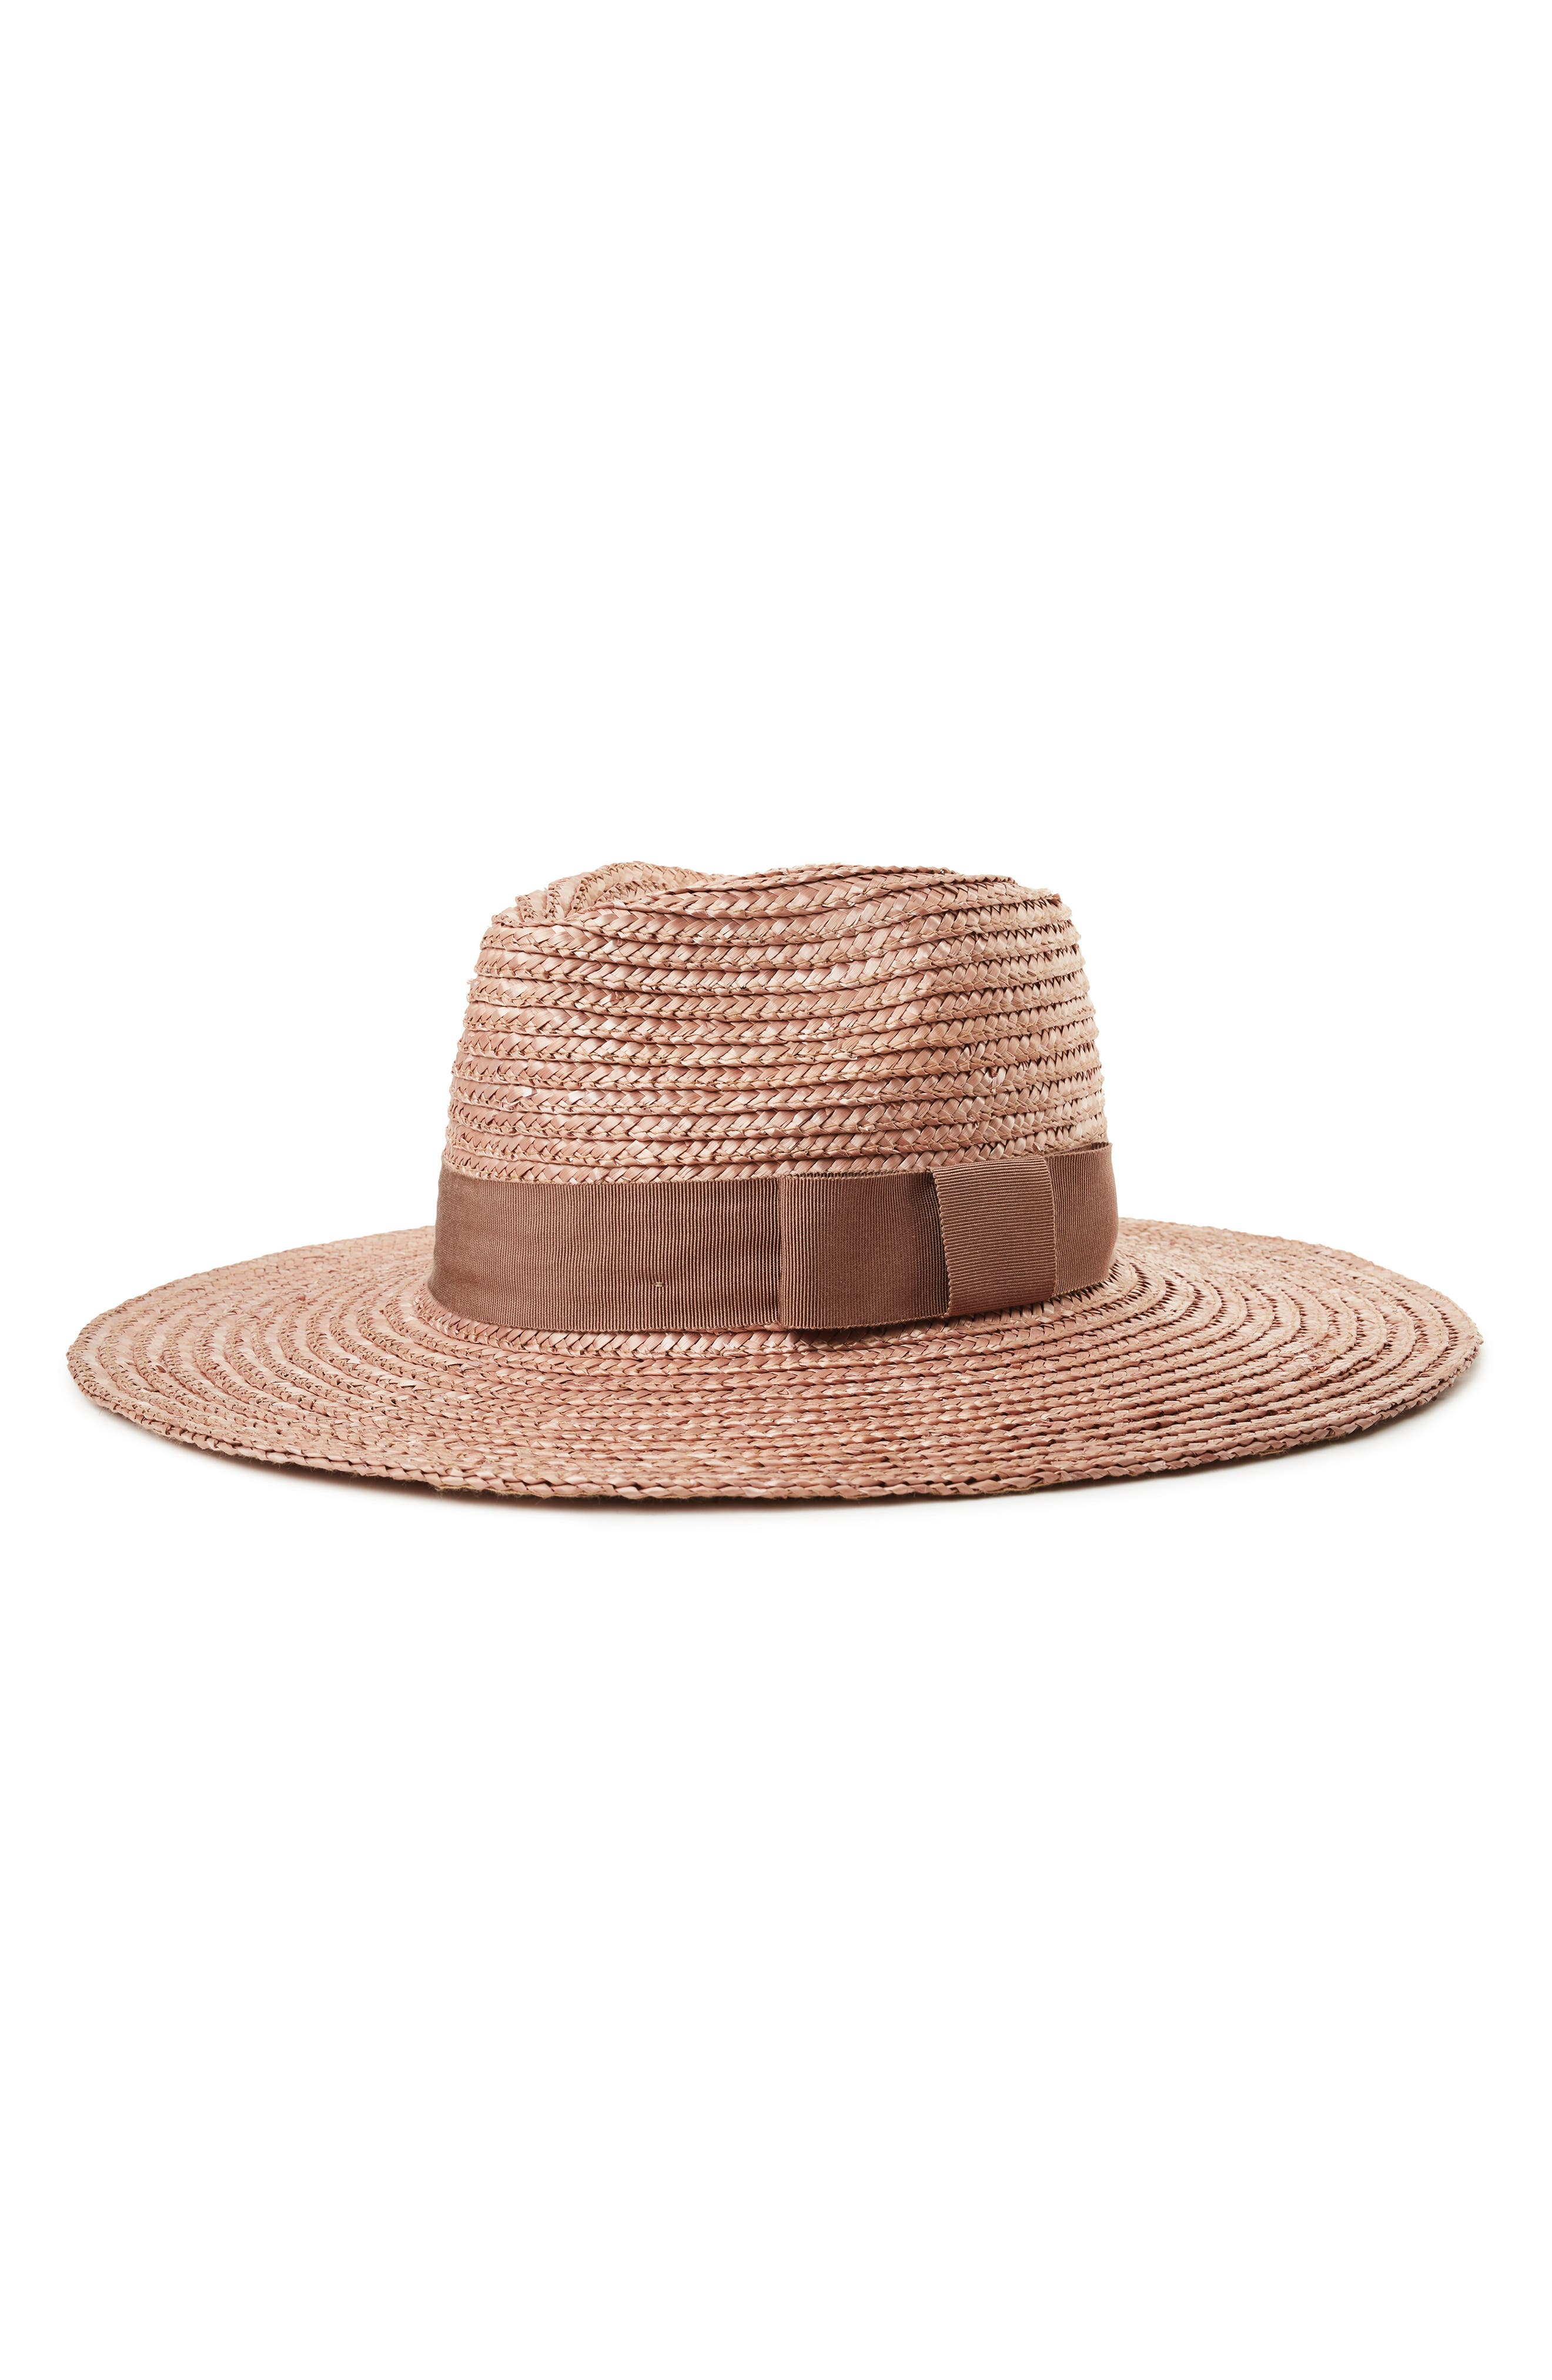 BRIXTON, 'Joanna' Straw Hat, Main thumbnail 1, color, LILAC